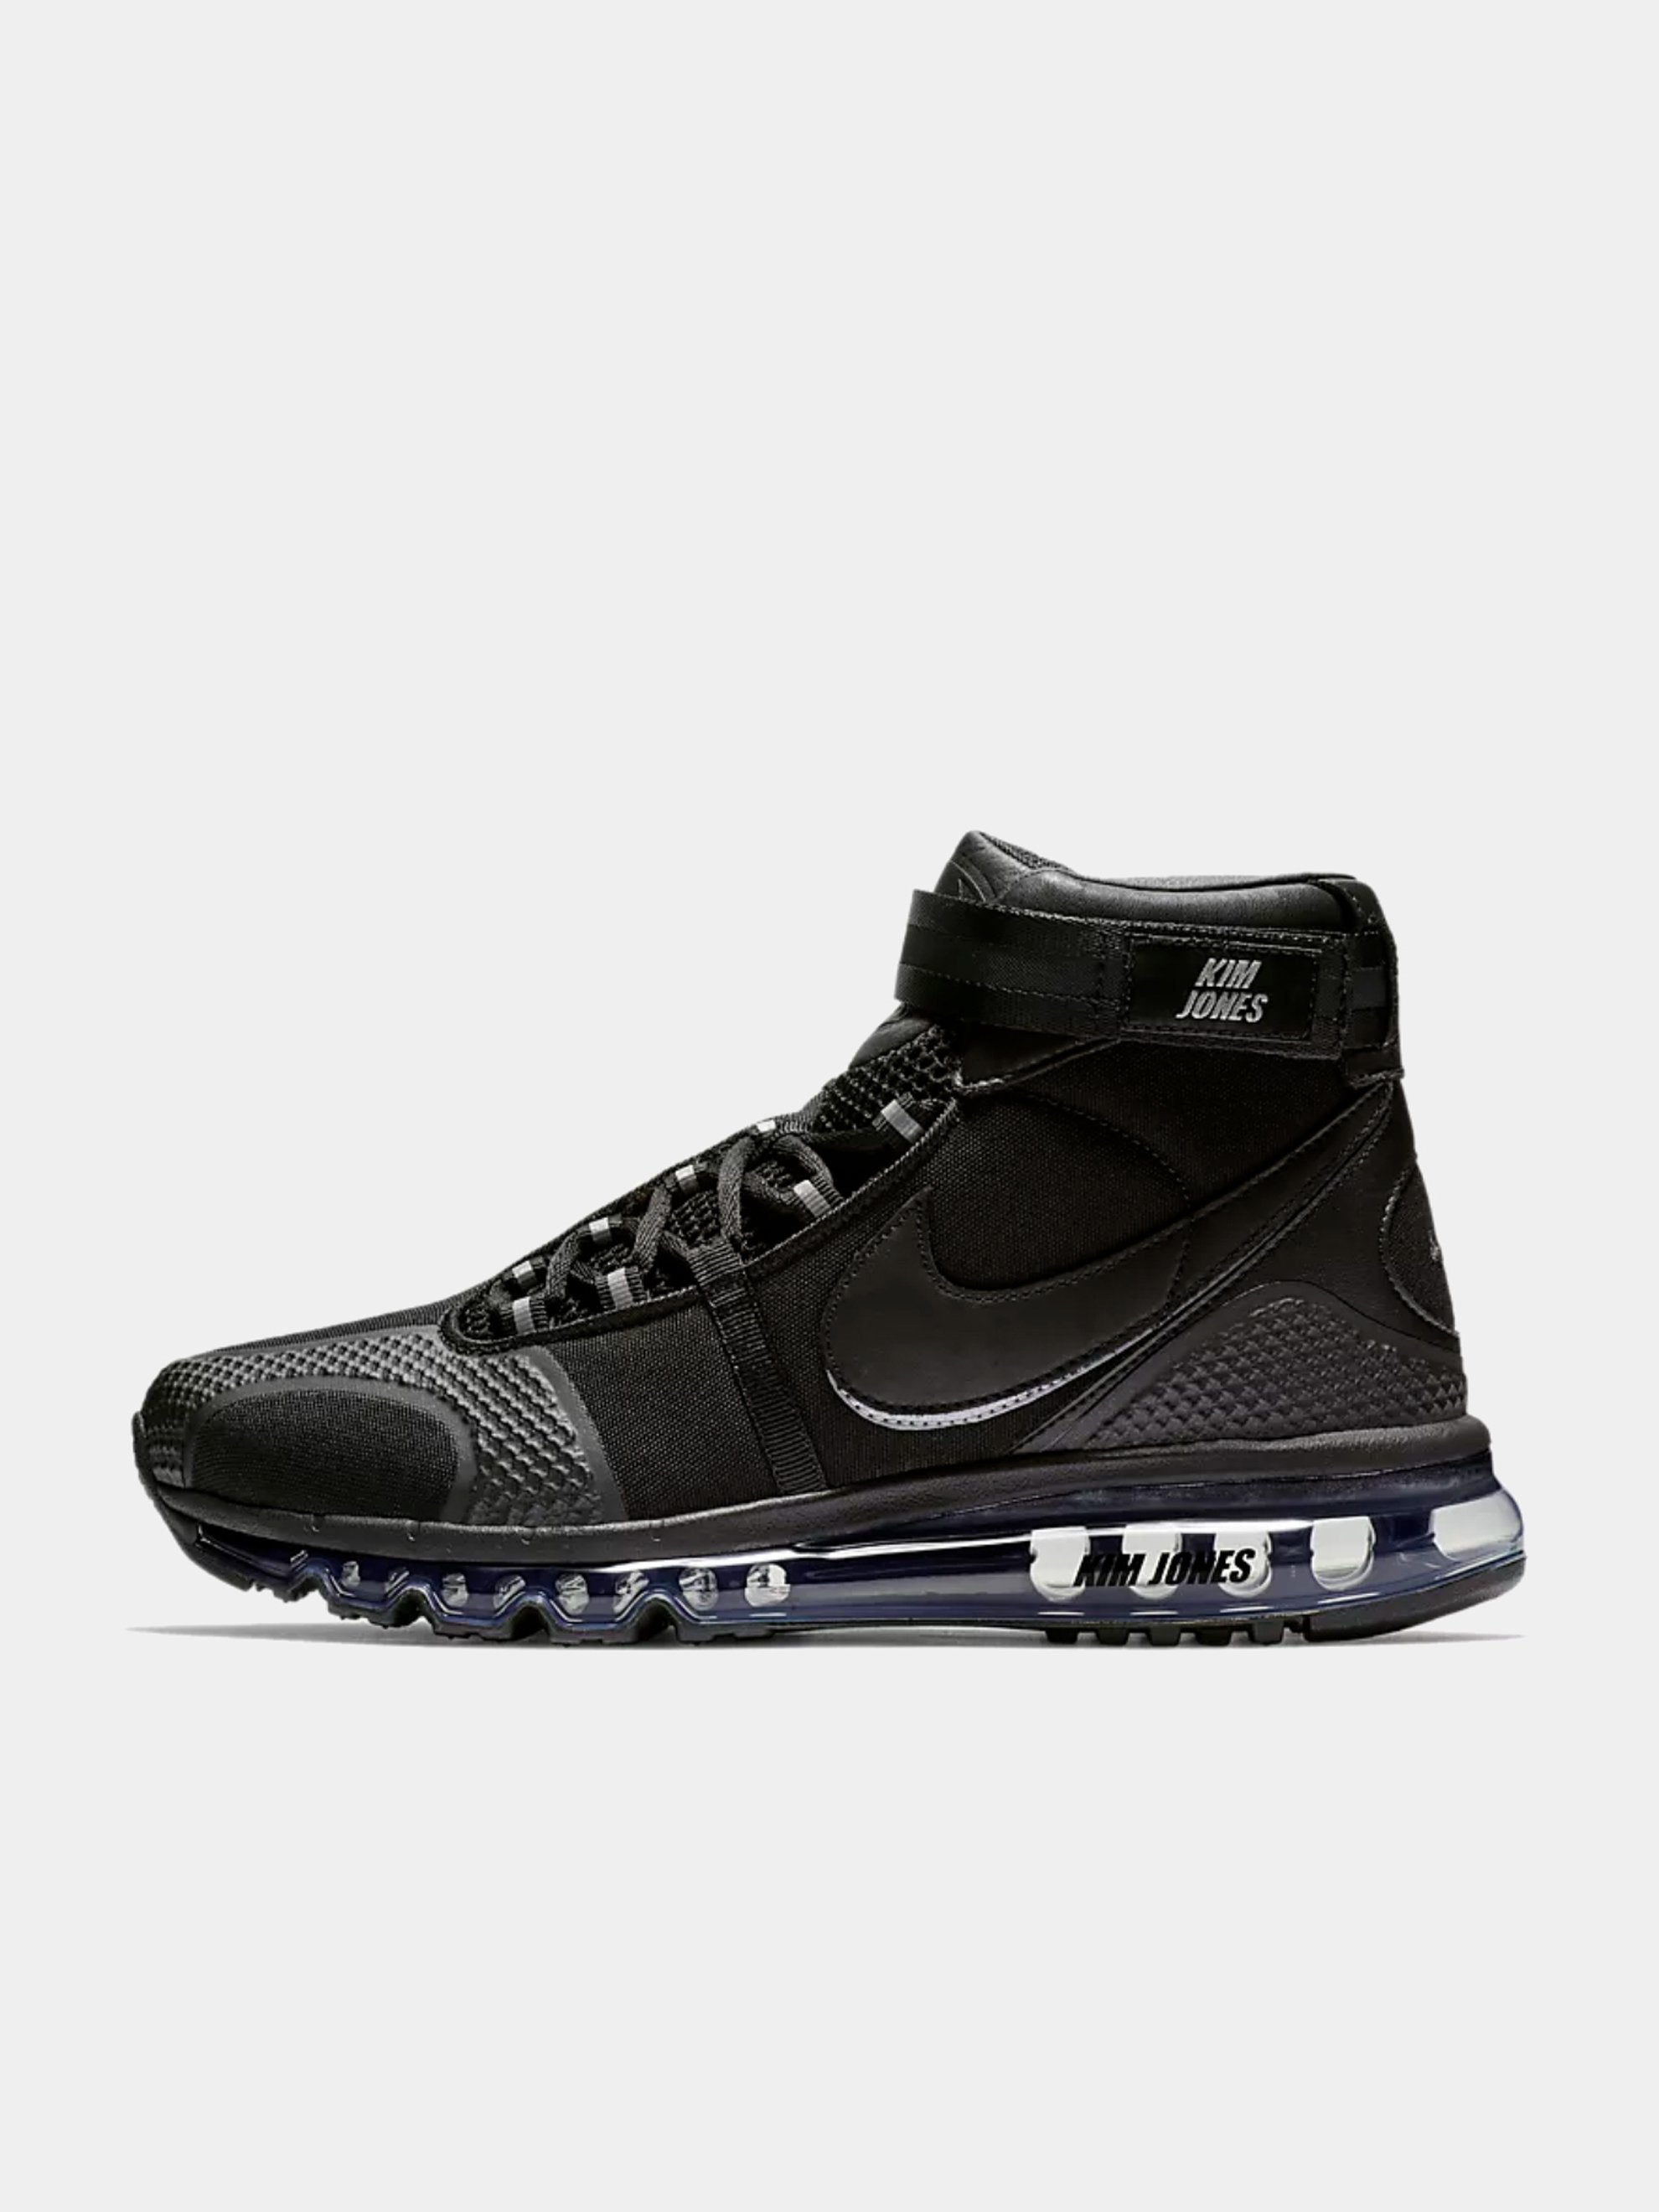 Nike x Kim Jones Air Max 360 High (Black)